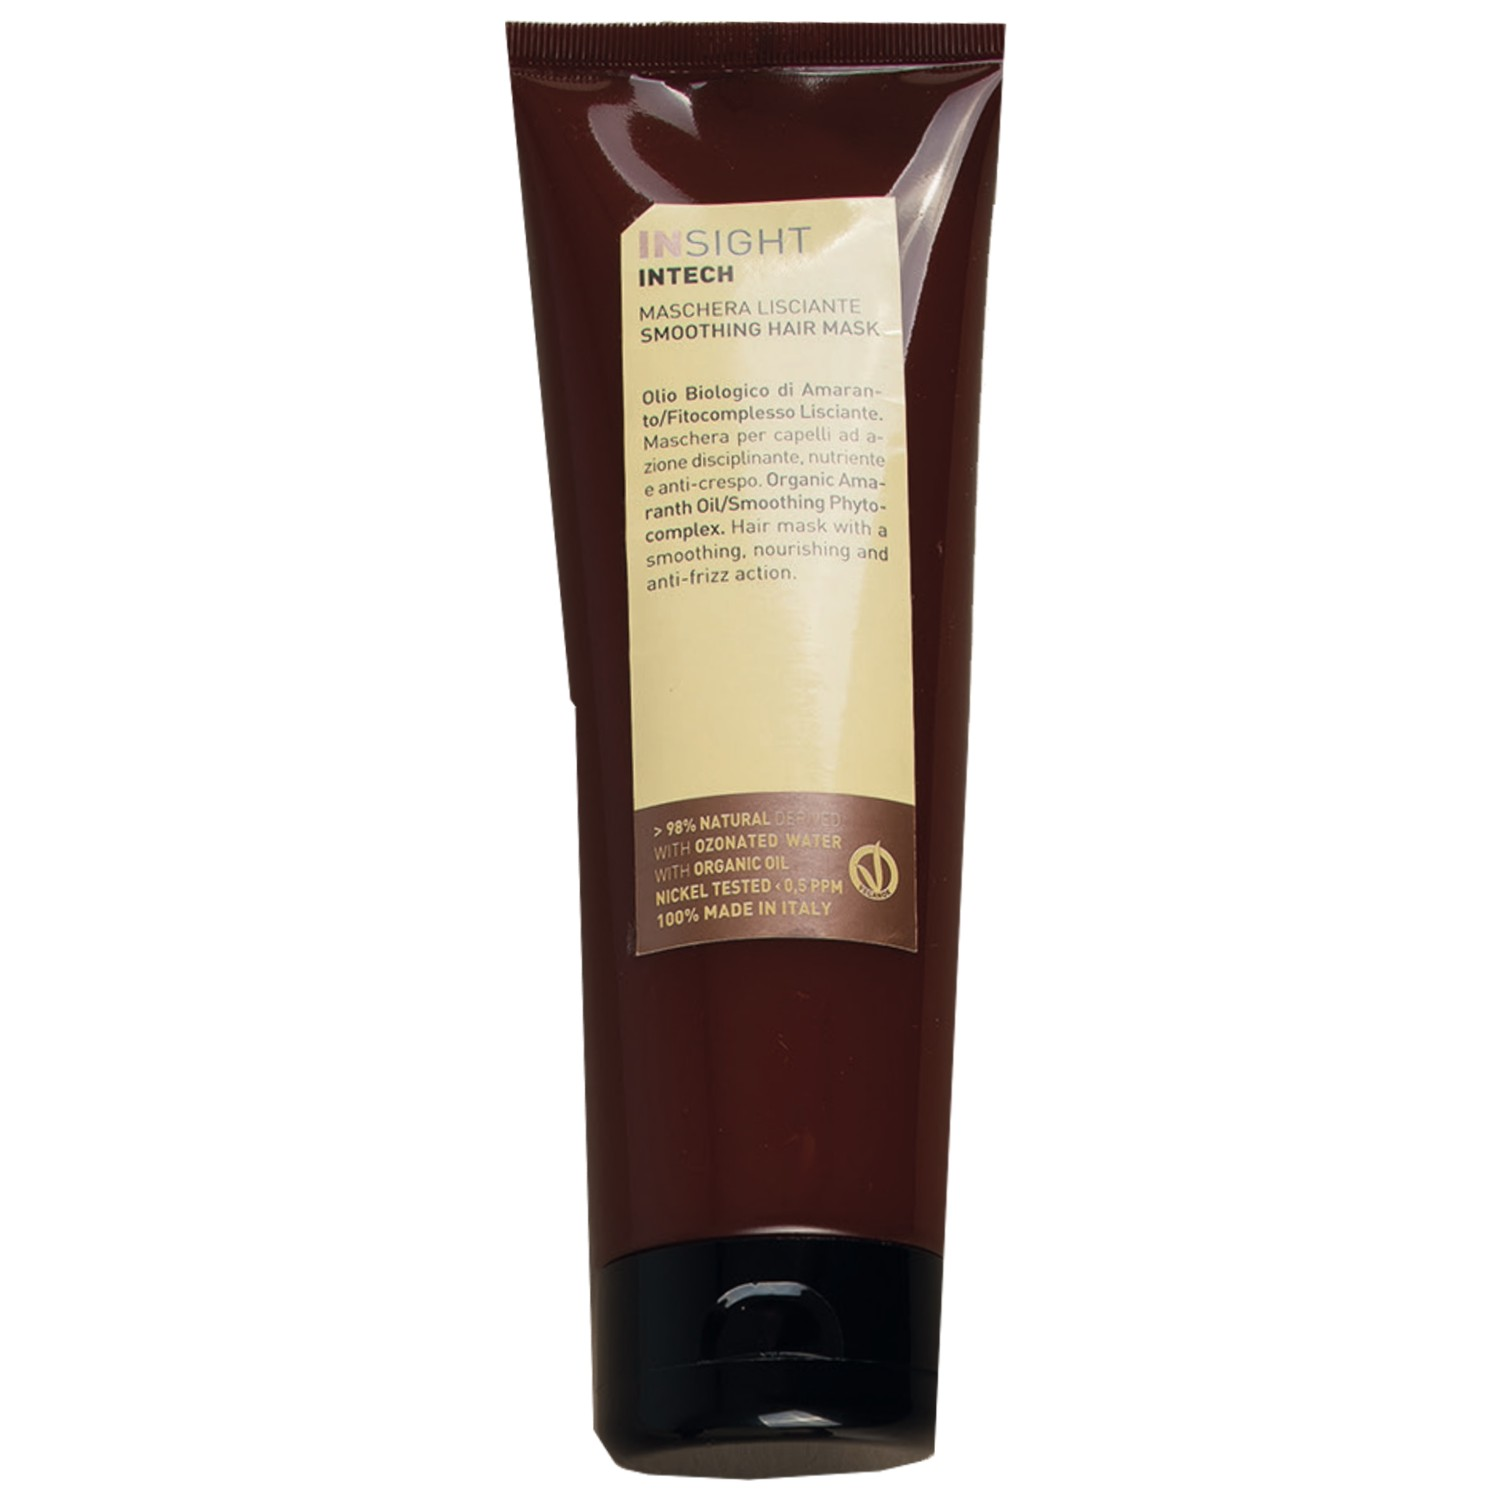 Insight INTECH Smoothing Hair Mask 250 ml